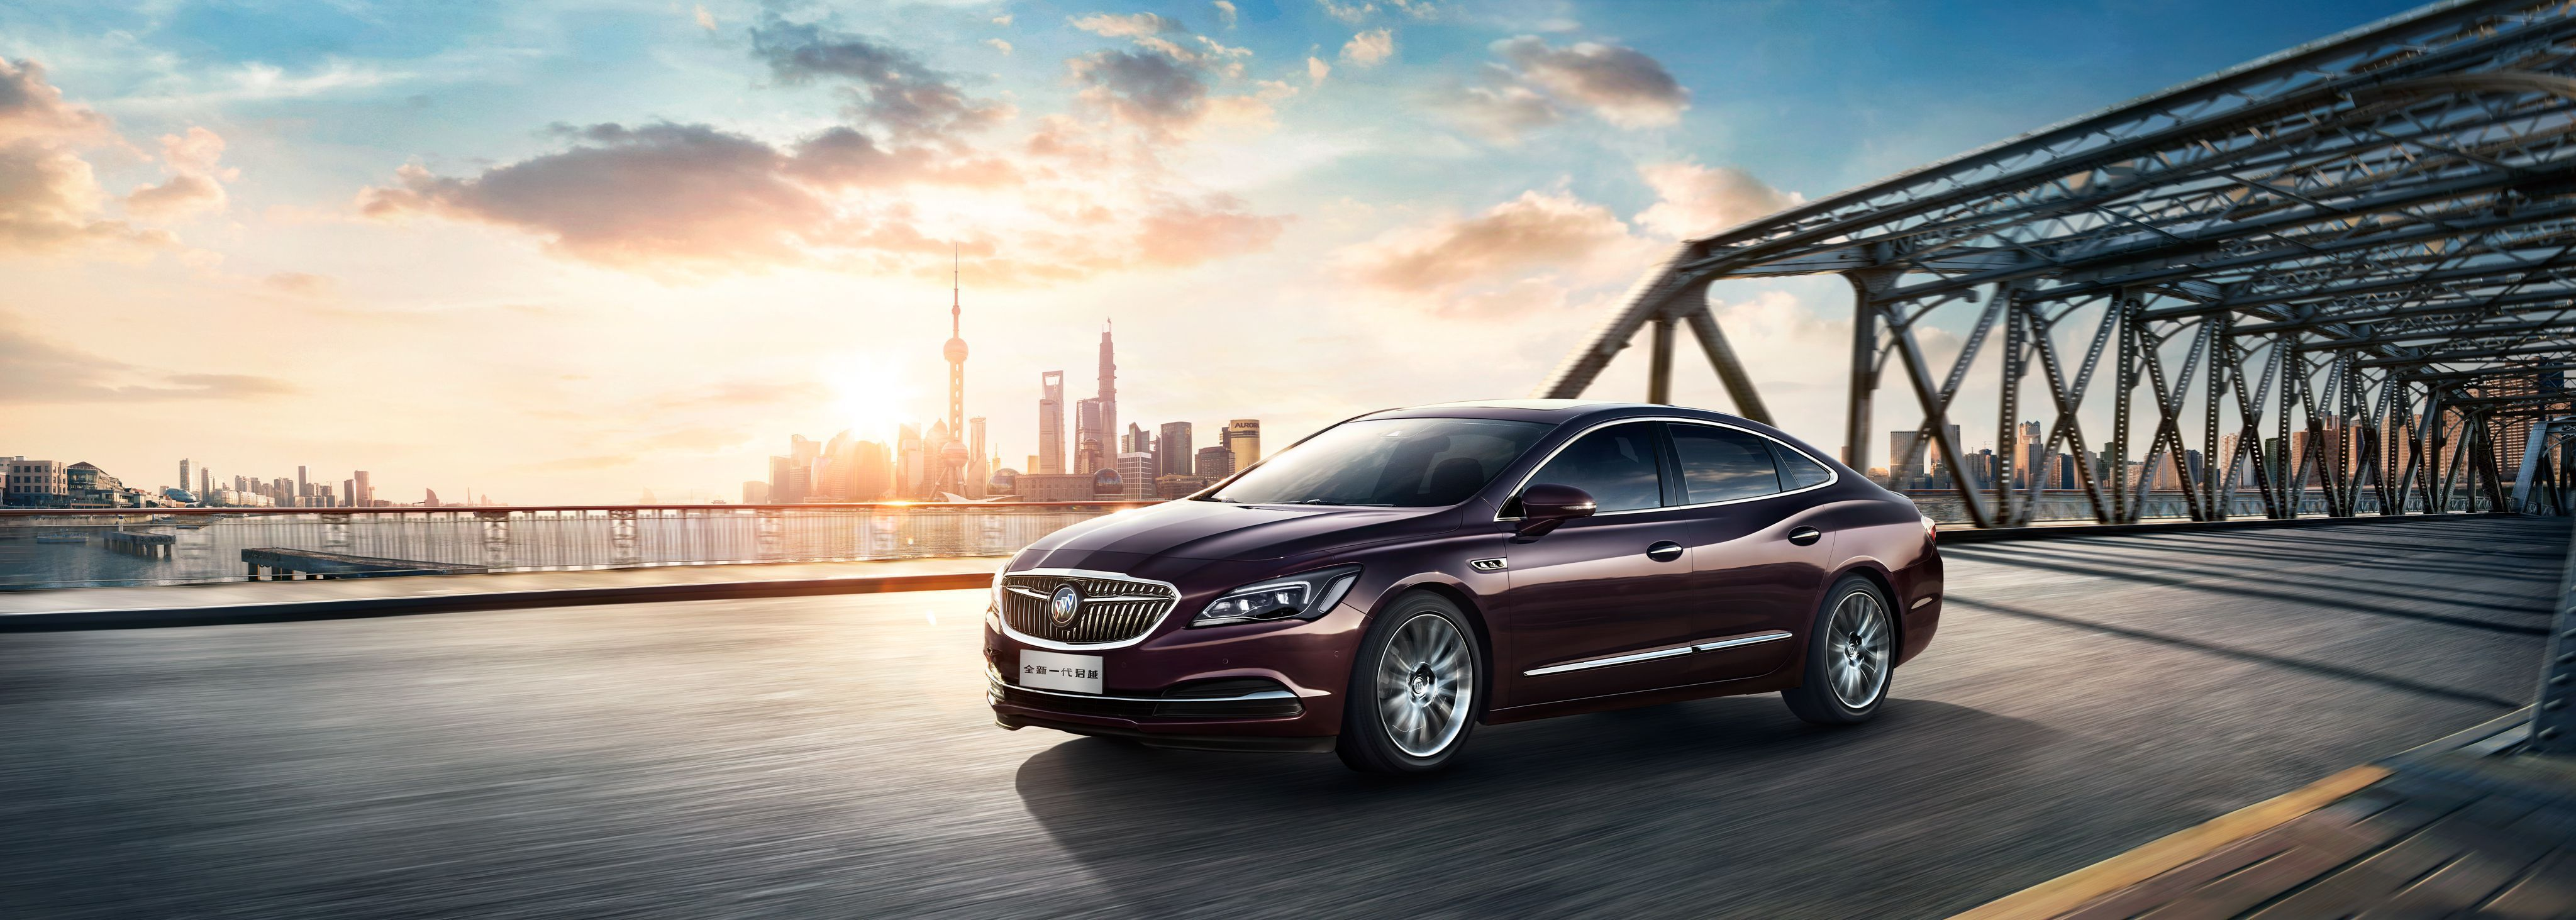 Buick Download Free Backgrounds HD